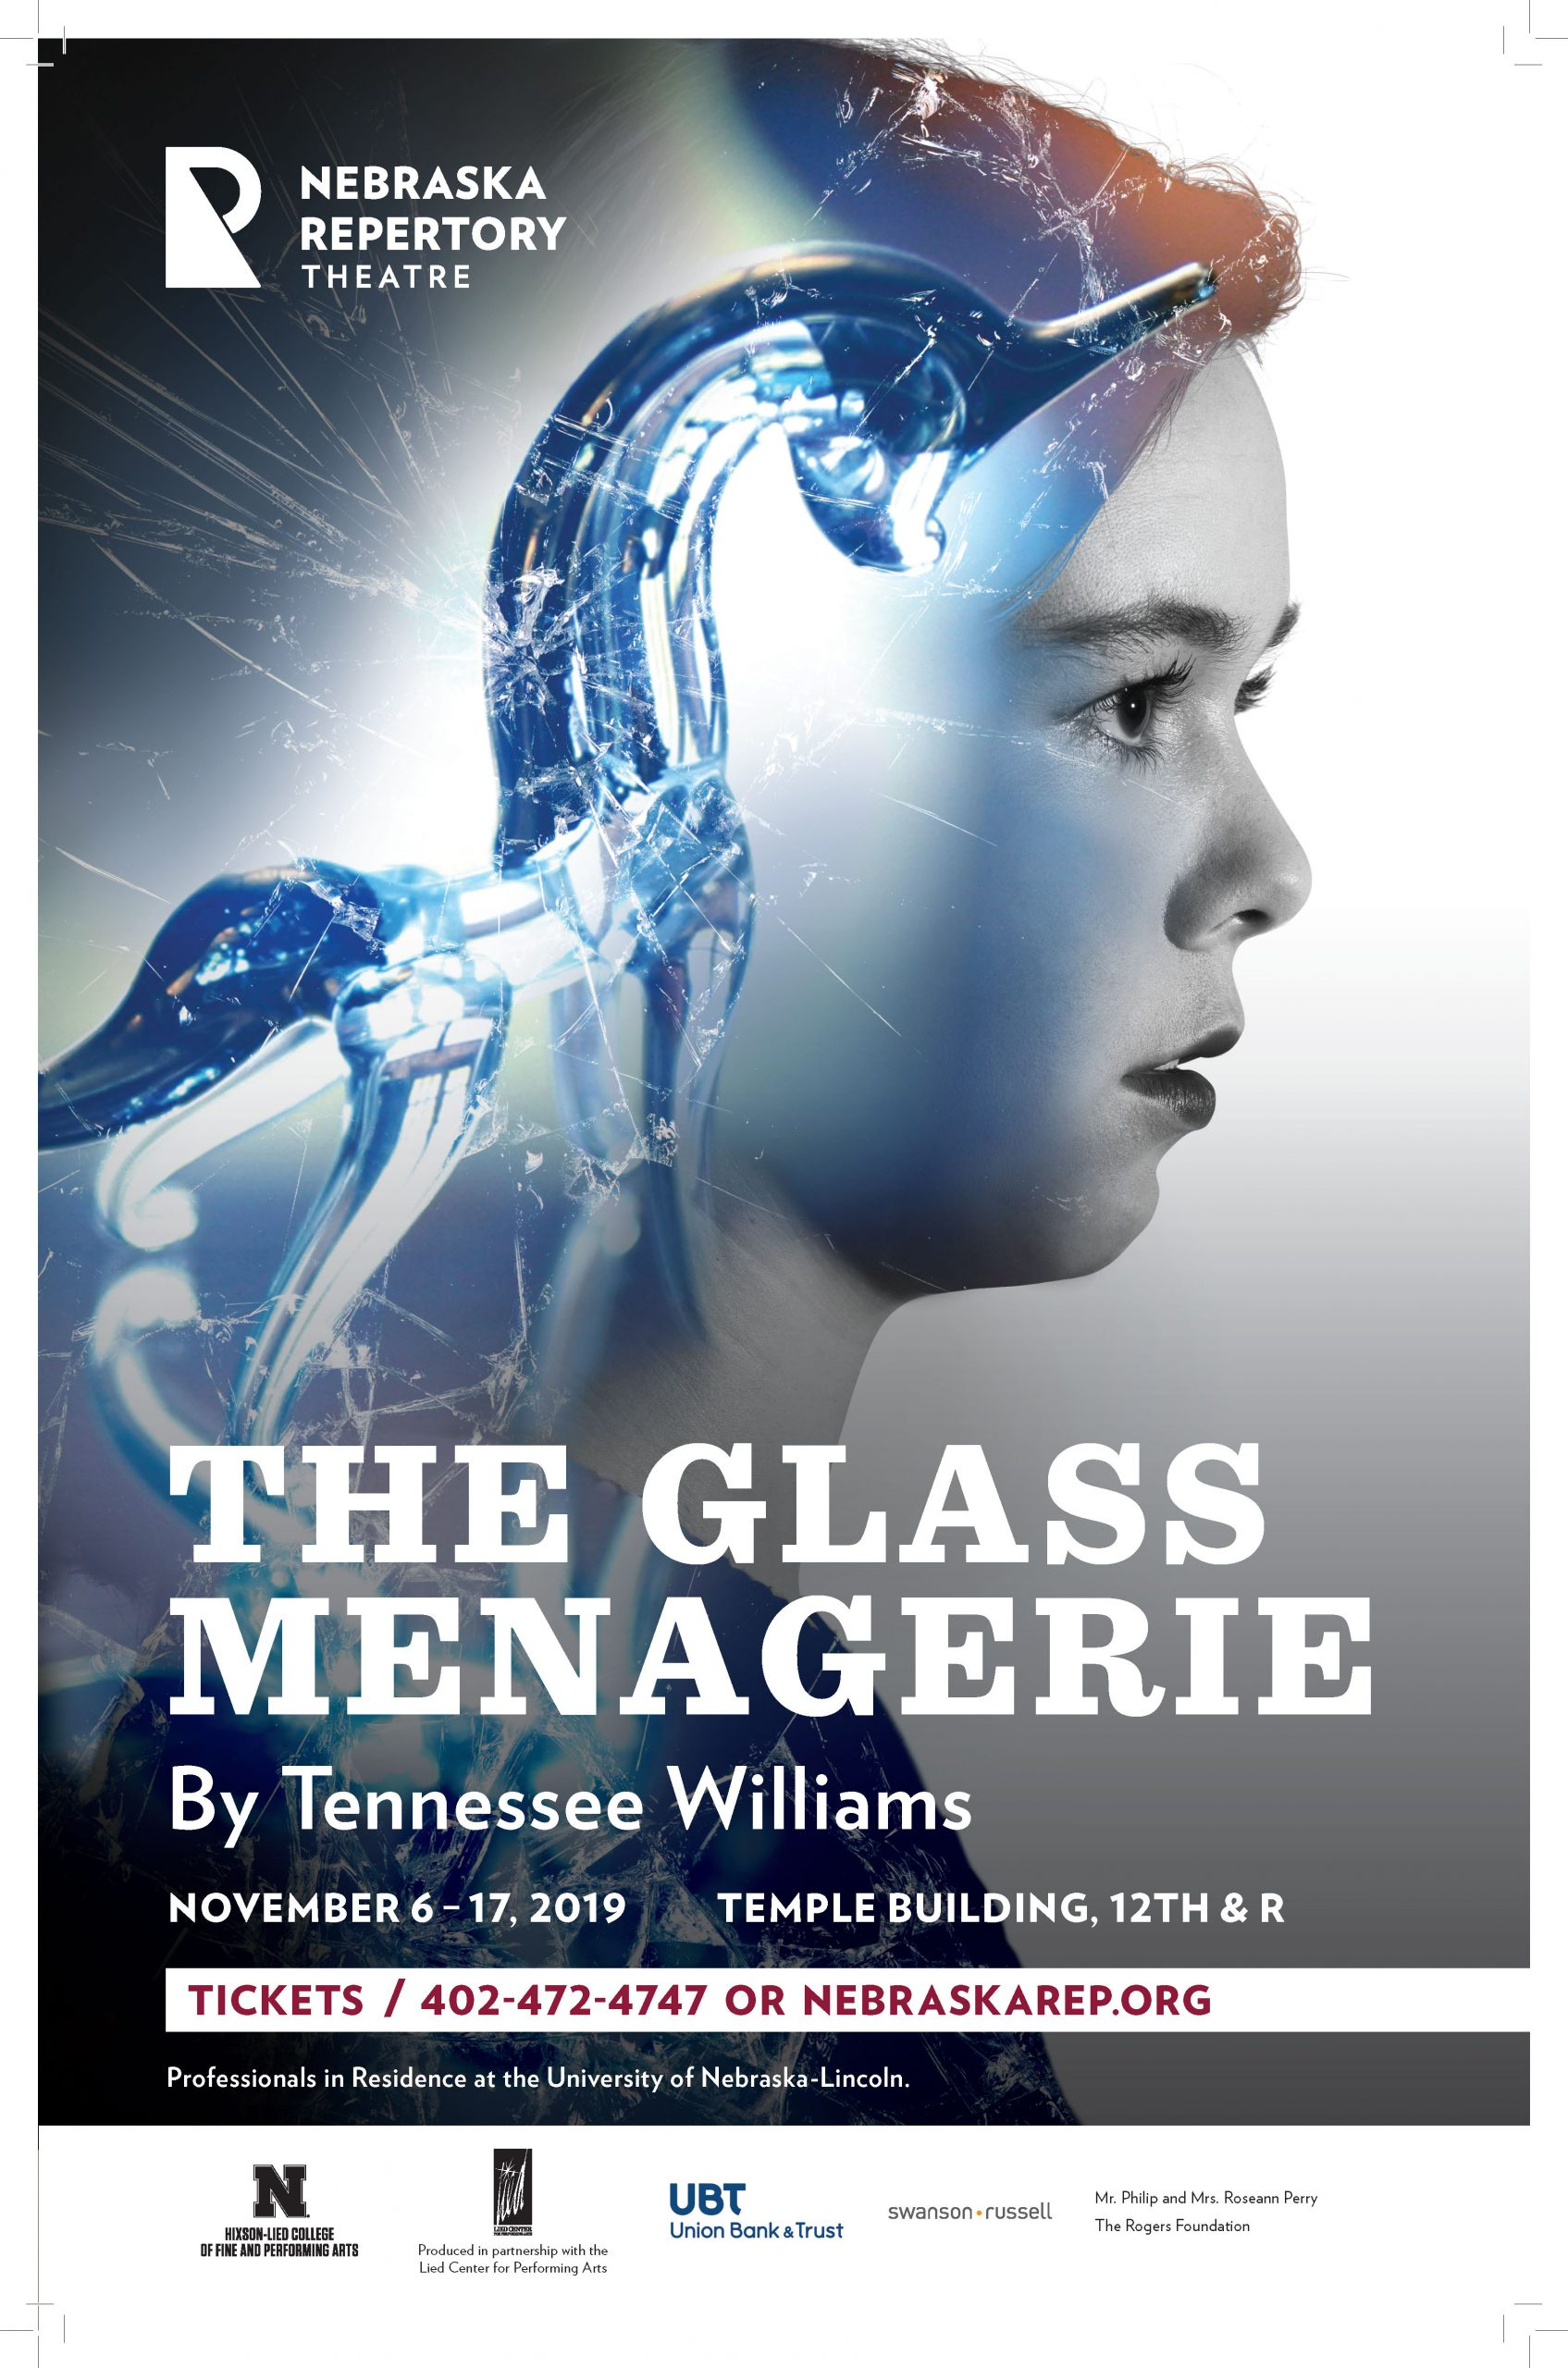 A poster with the title 'The Glass Menagerie'. A black and white photo of a woman's face in profile is overlaid with an image of a blue glass unicorn and broken glass.